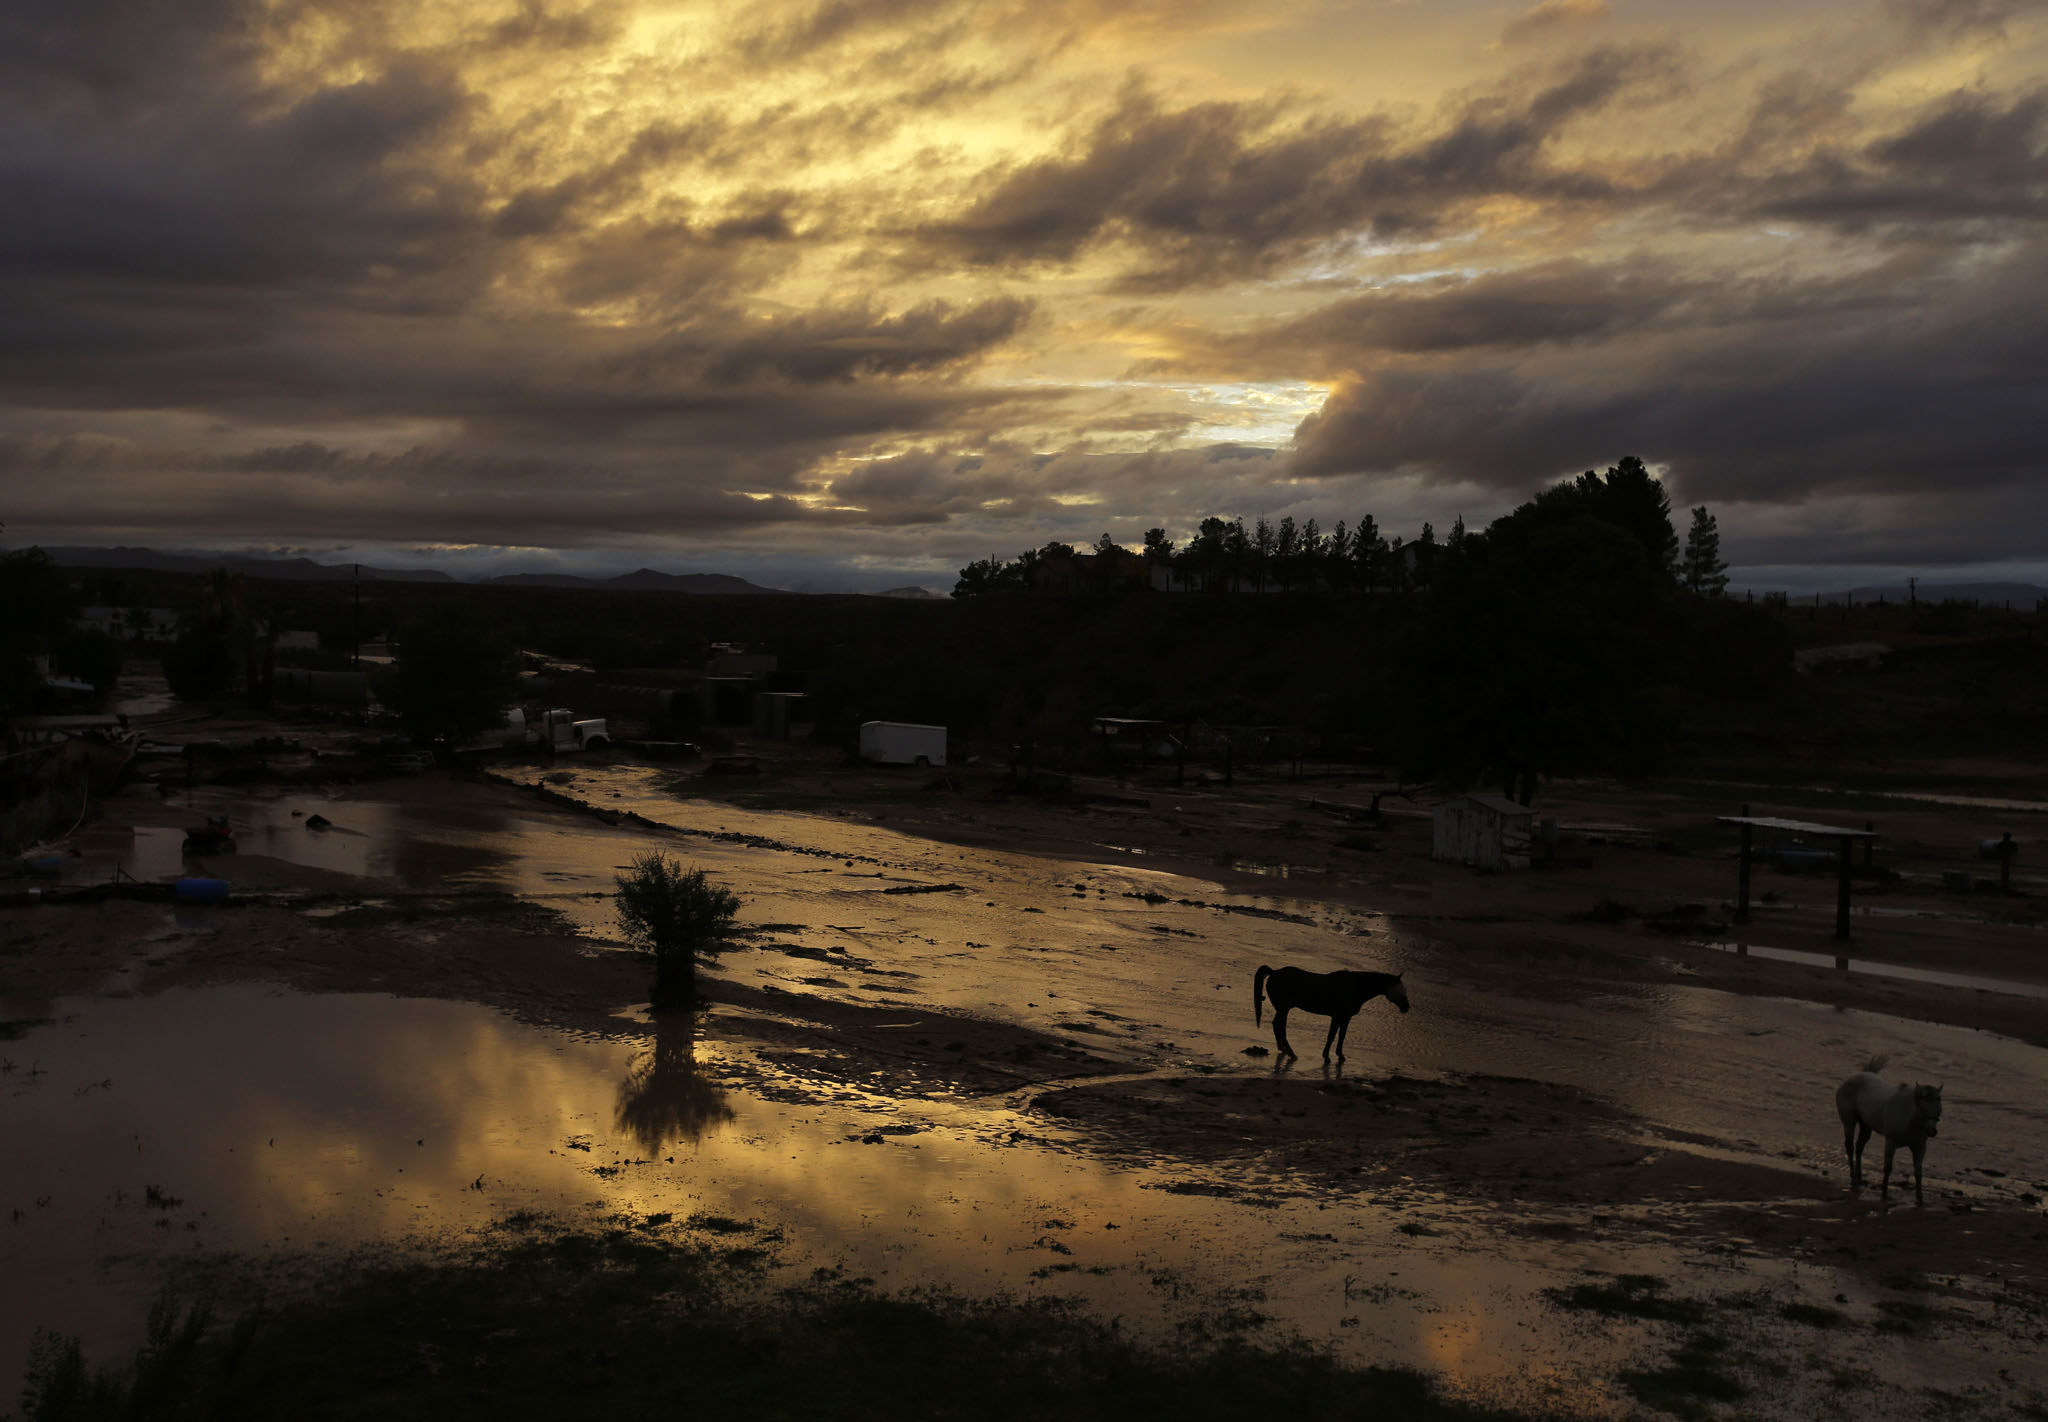 Horses walk through flood water behind a home in Moapa, Nev., Monday, Sept. 8, 2014. Flooding throughout the area damaged homes and roads. (AP Photo/John Locher)